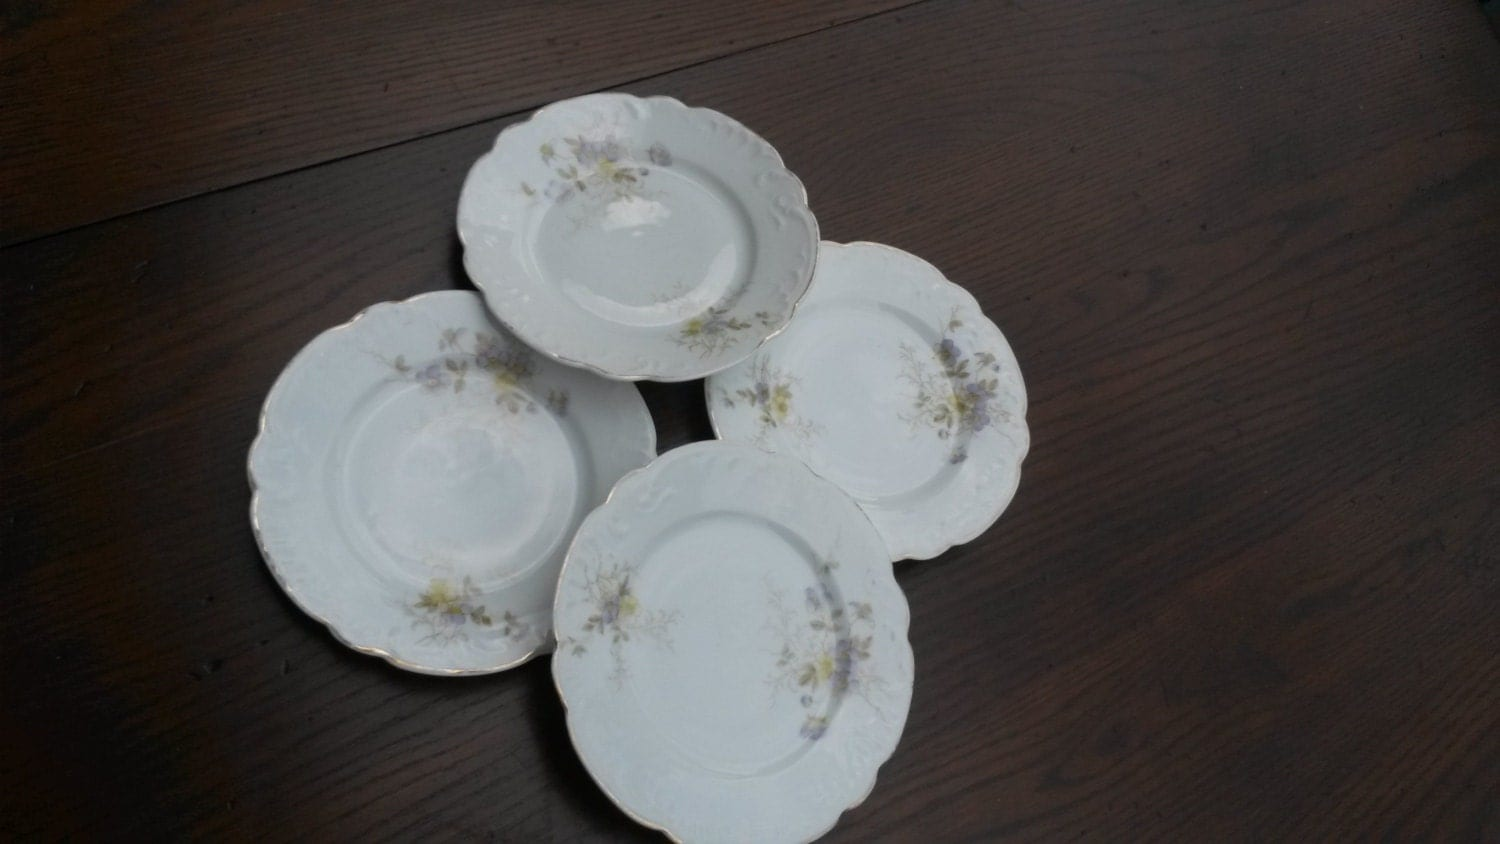 Vintage BampB PLATE Dessert Plates Bridal Shower By Mermaidwatch